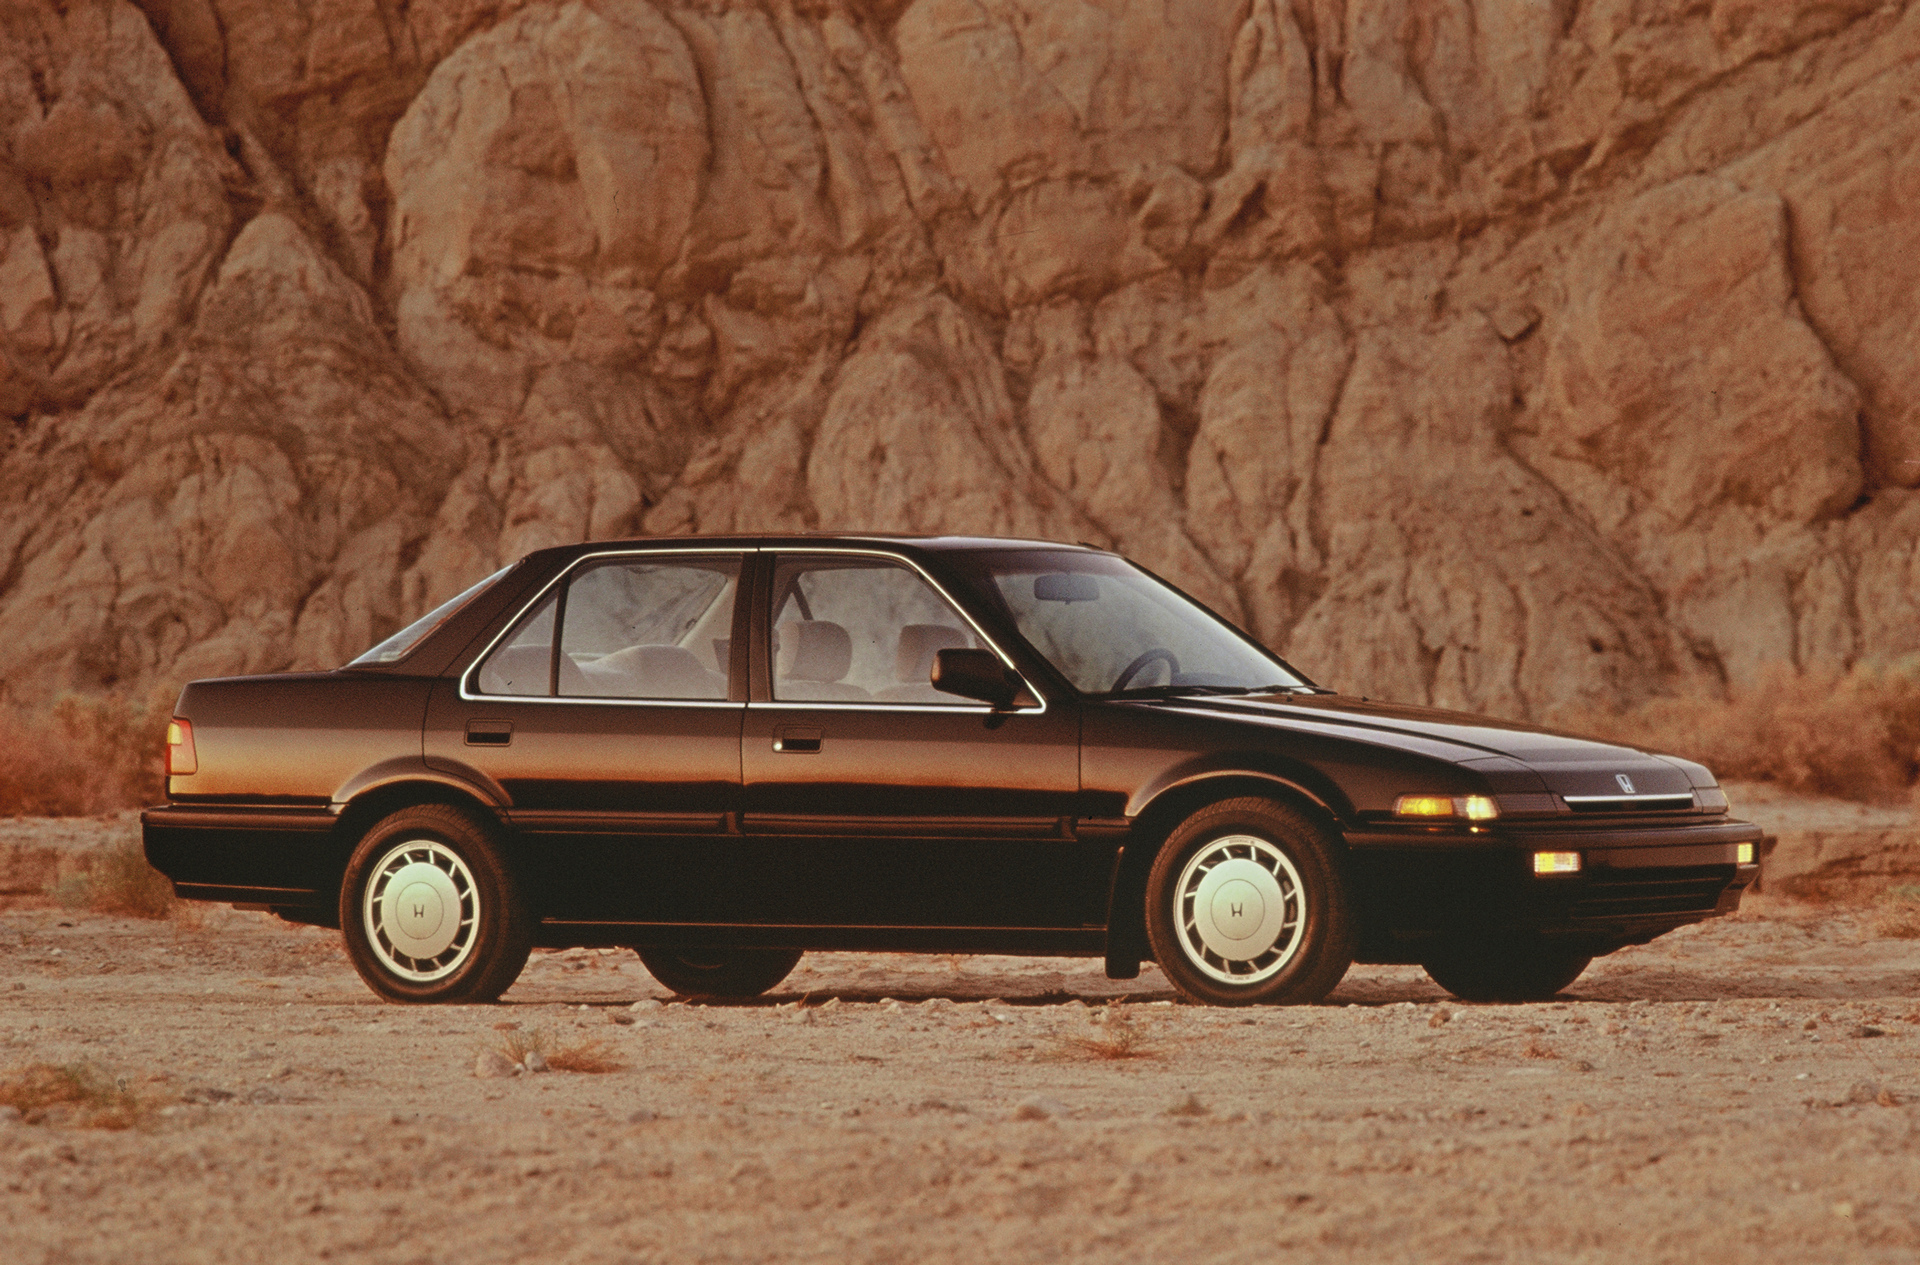 1982 Accord 3rd Generation © Honda Motor Co., Ltd.